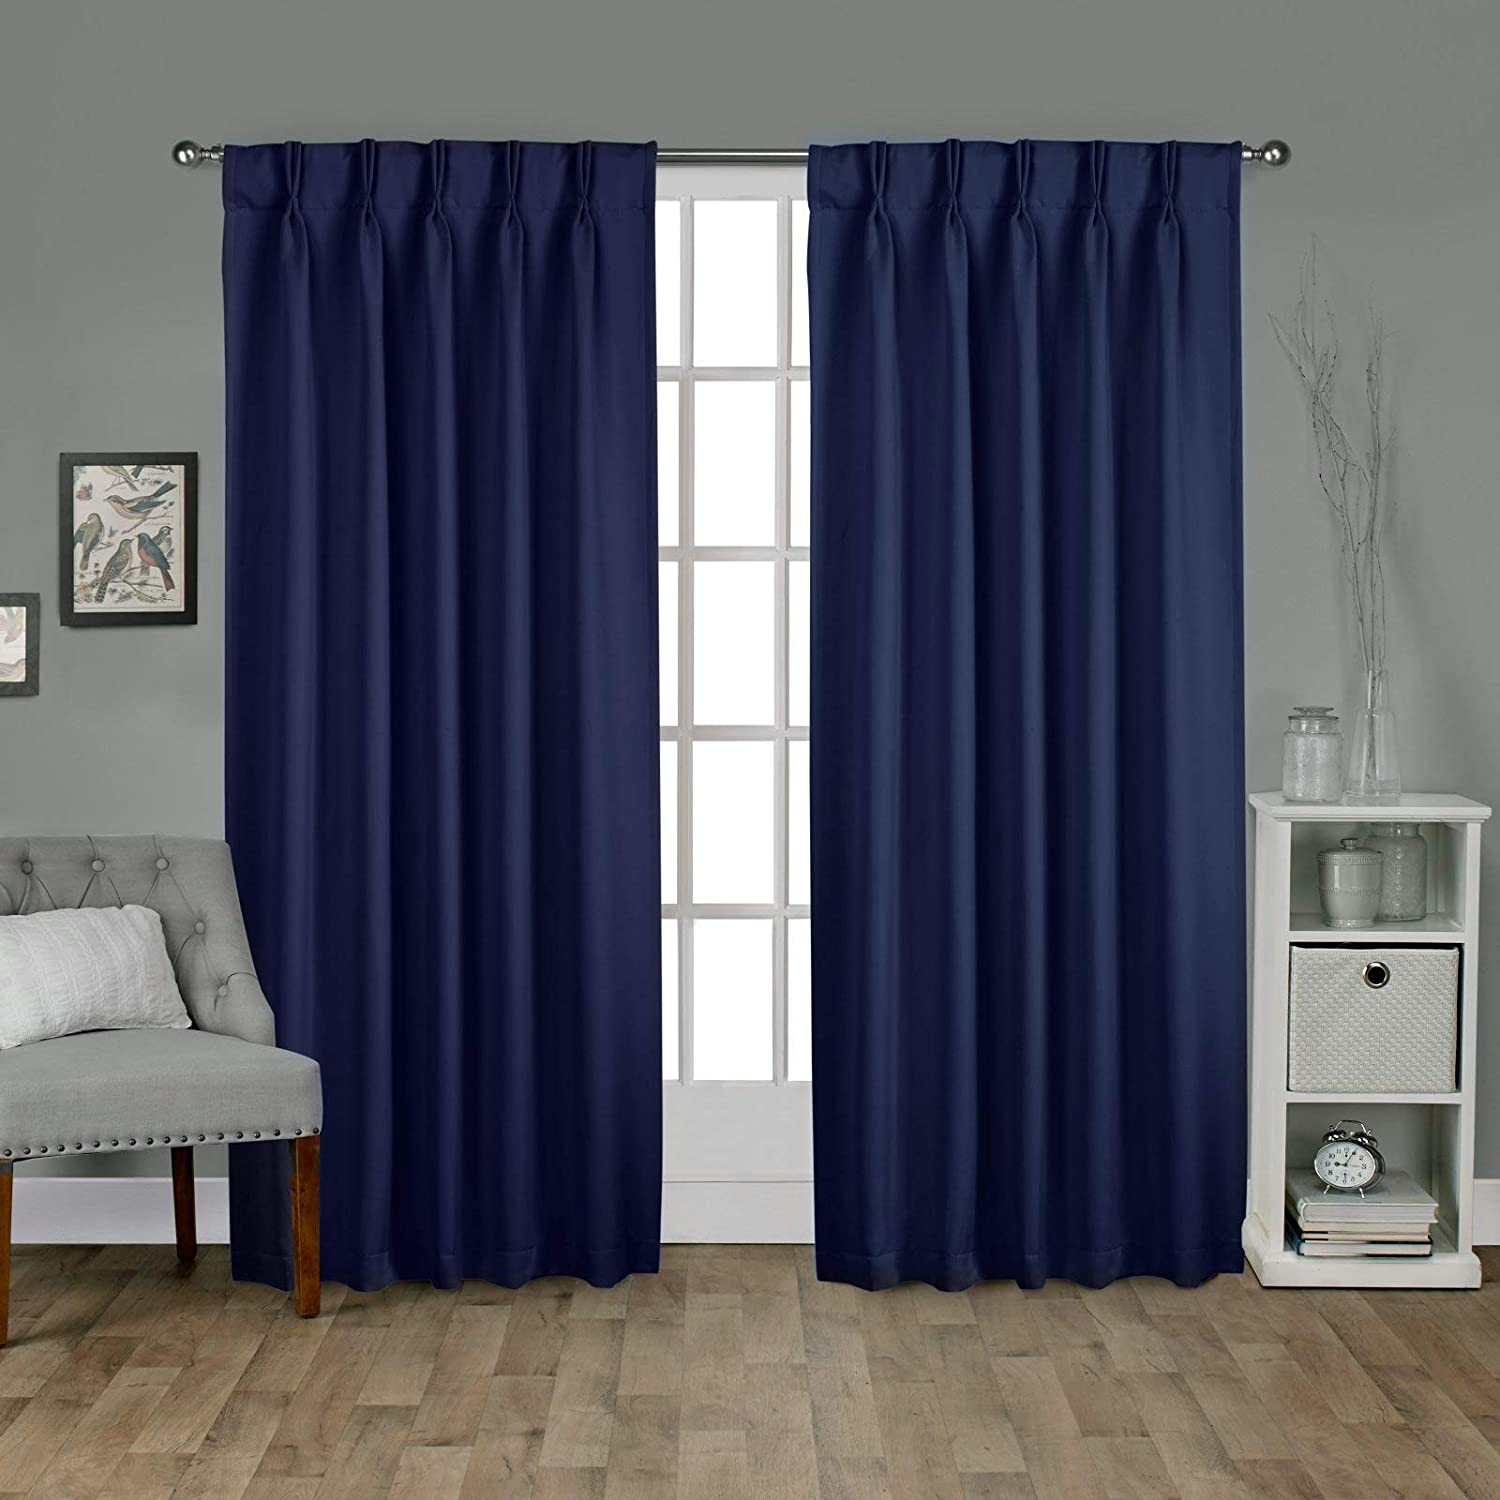 EcoDrapes Double Pinch Pleated Blackout D Albuquerque Mall Window Panel Curtain Discount mail order